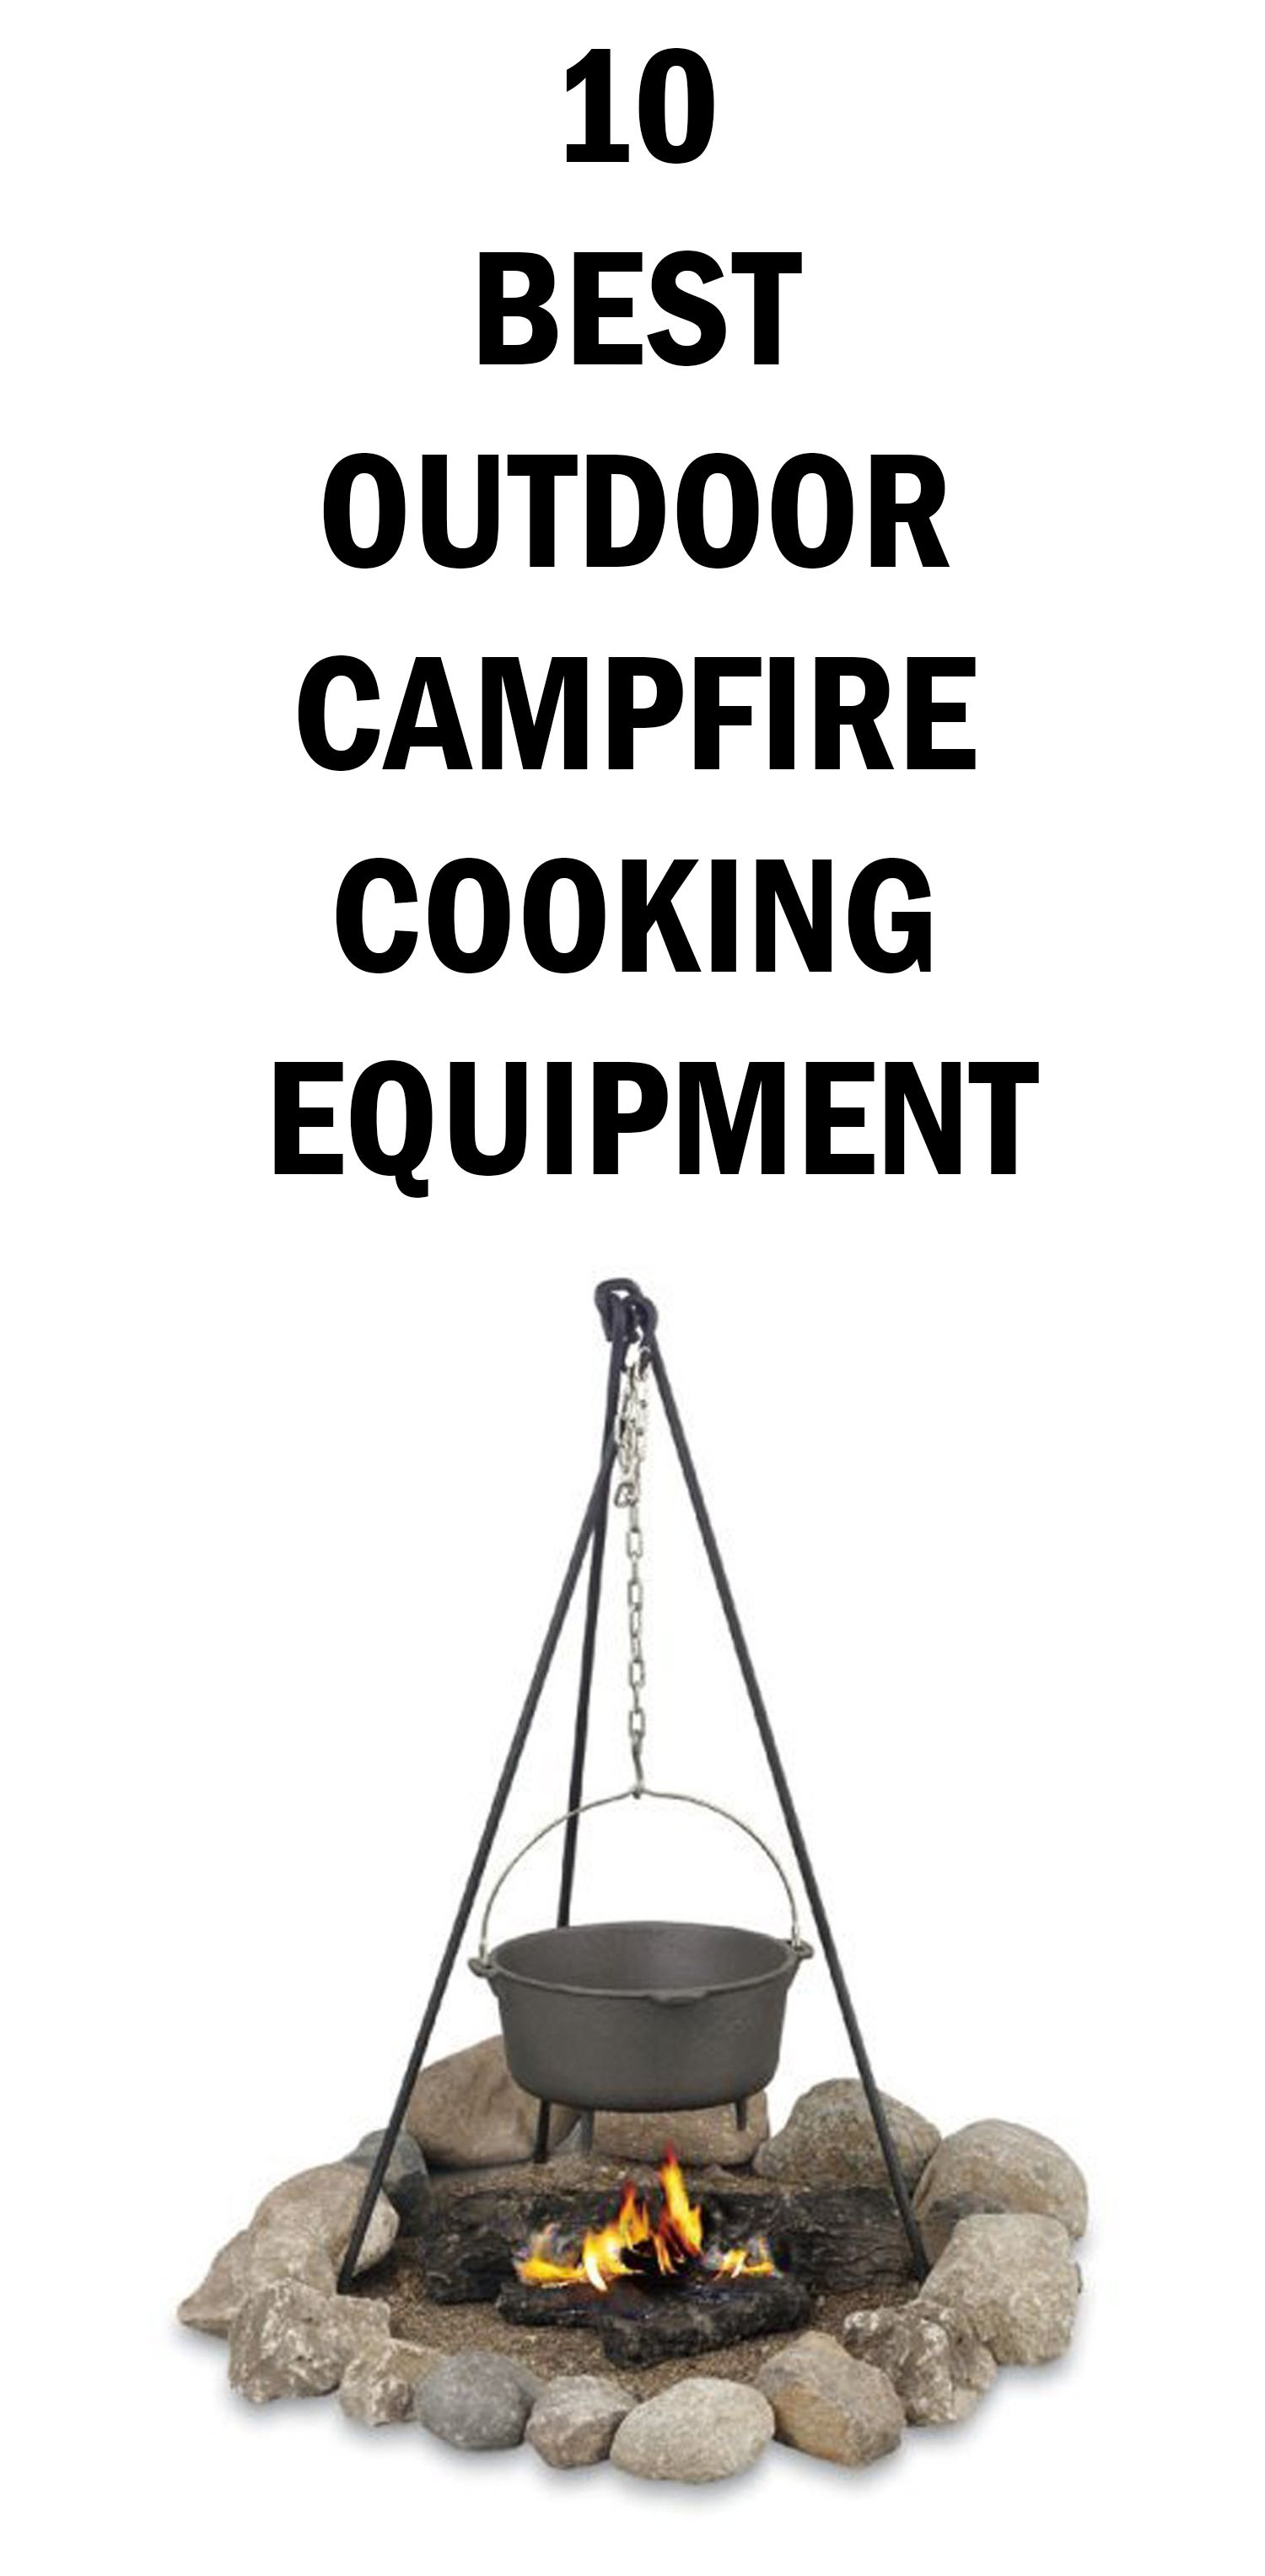 Best Outdoor Campfire Cooking Equipment  Camping Campfires